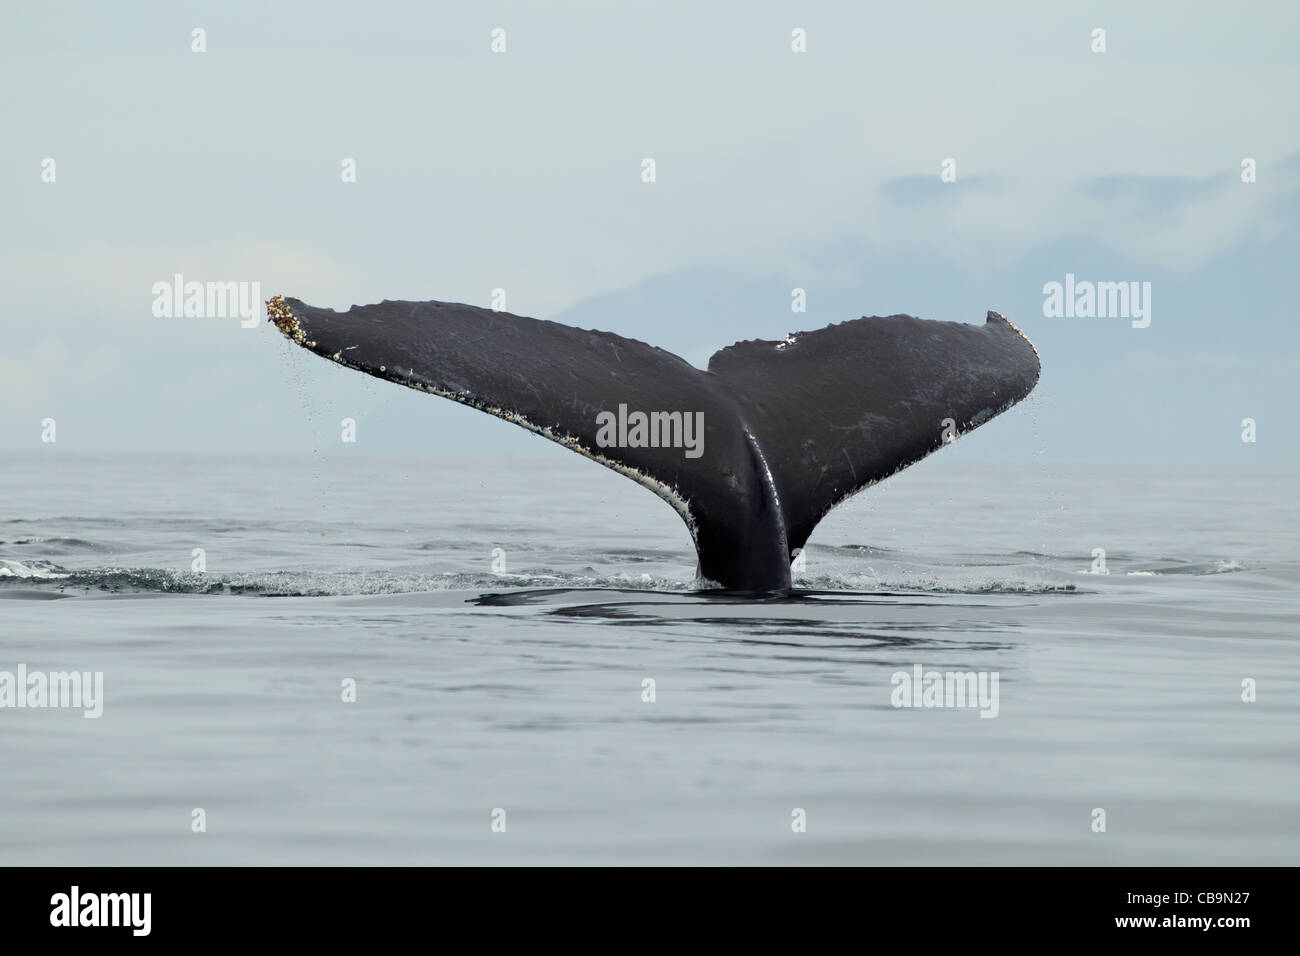 Humpback Whale Fluking, Sounding - Stock Image